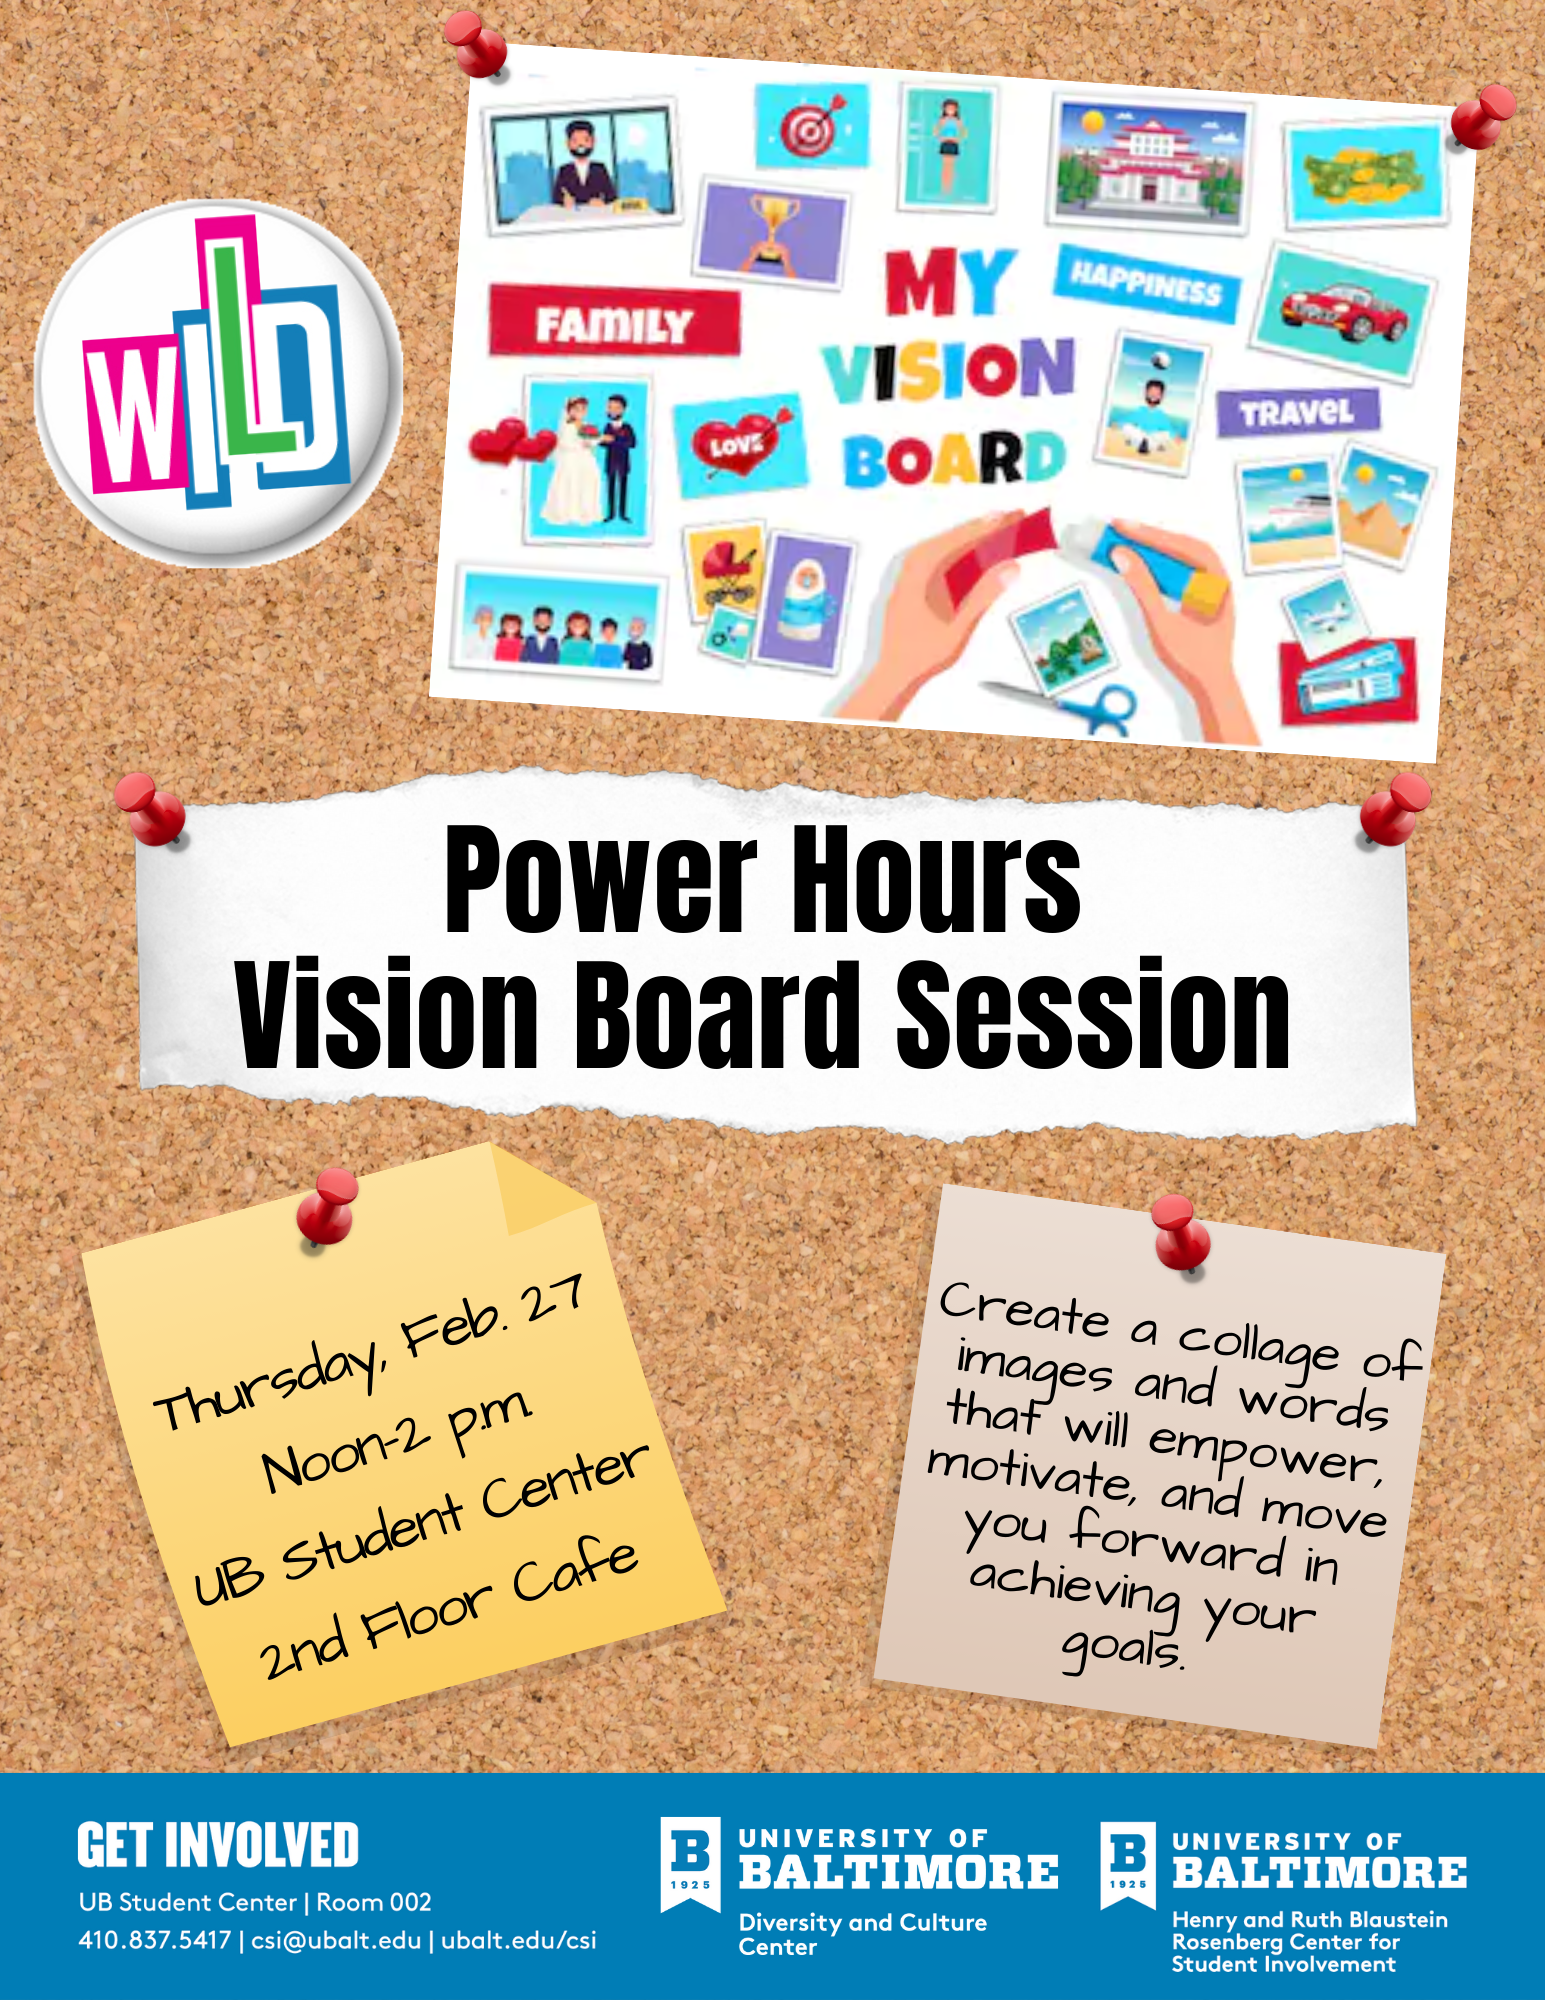 Women's Initiative for Leadership Development Vision Board Session